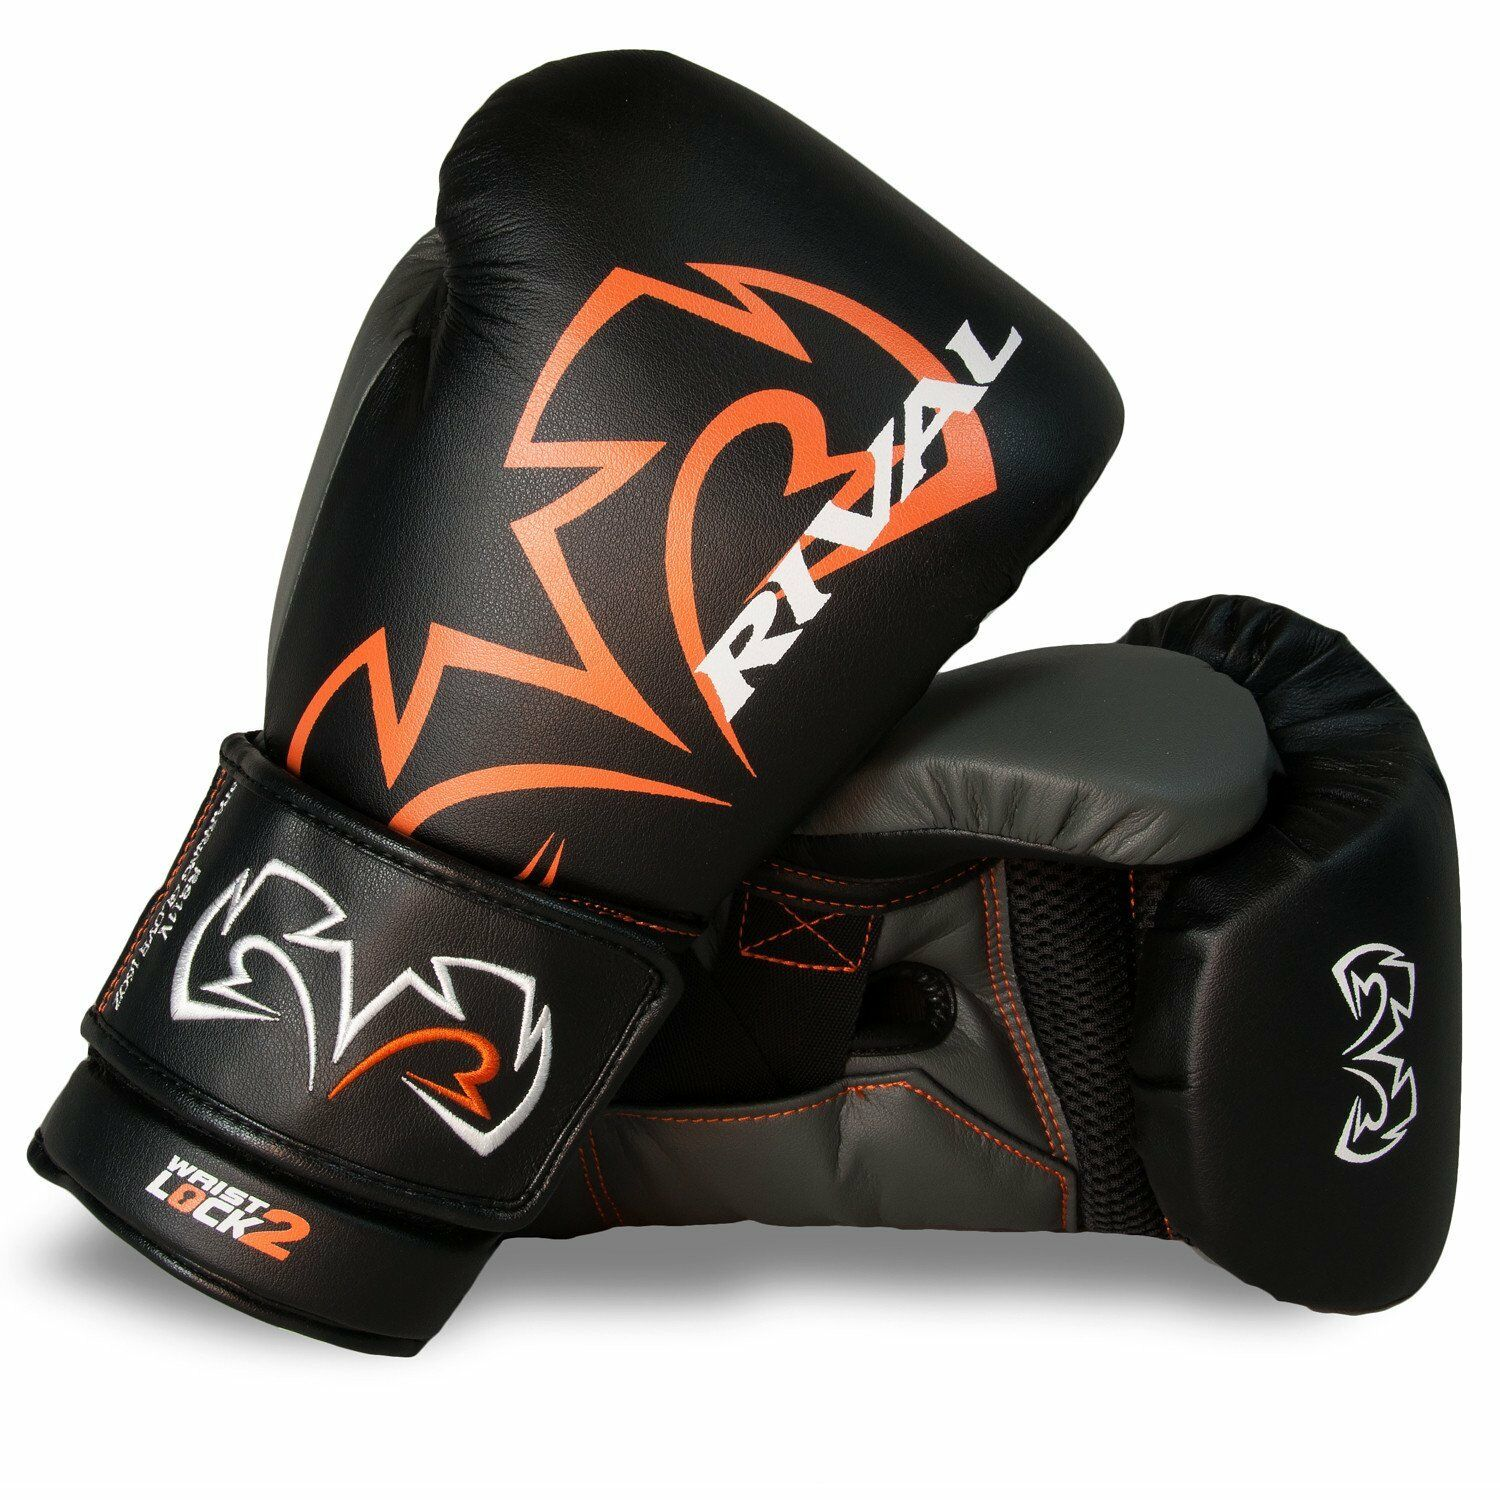 Rival Boxhandschuhe Rs11v Evolution Workout Sparring Trainingshandschuhe Schwarz